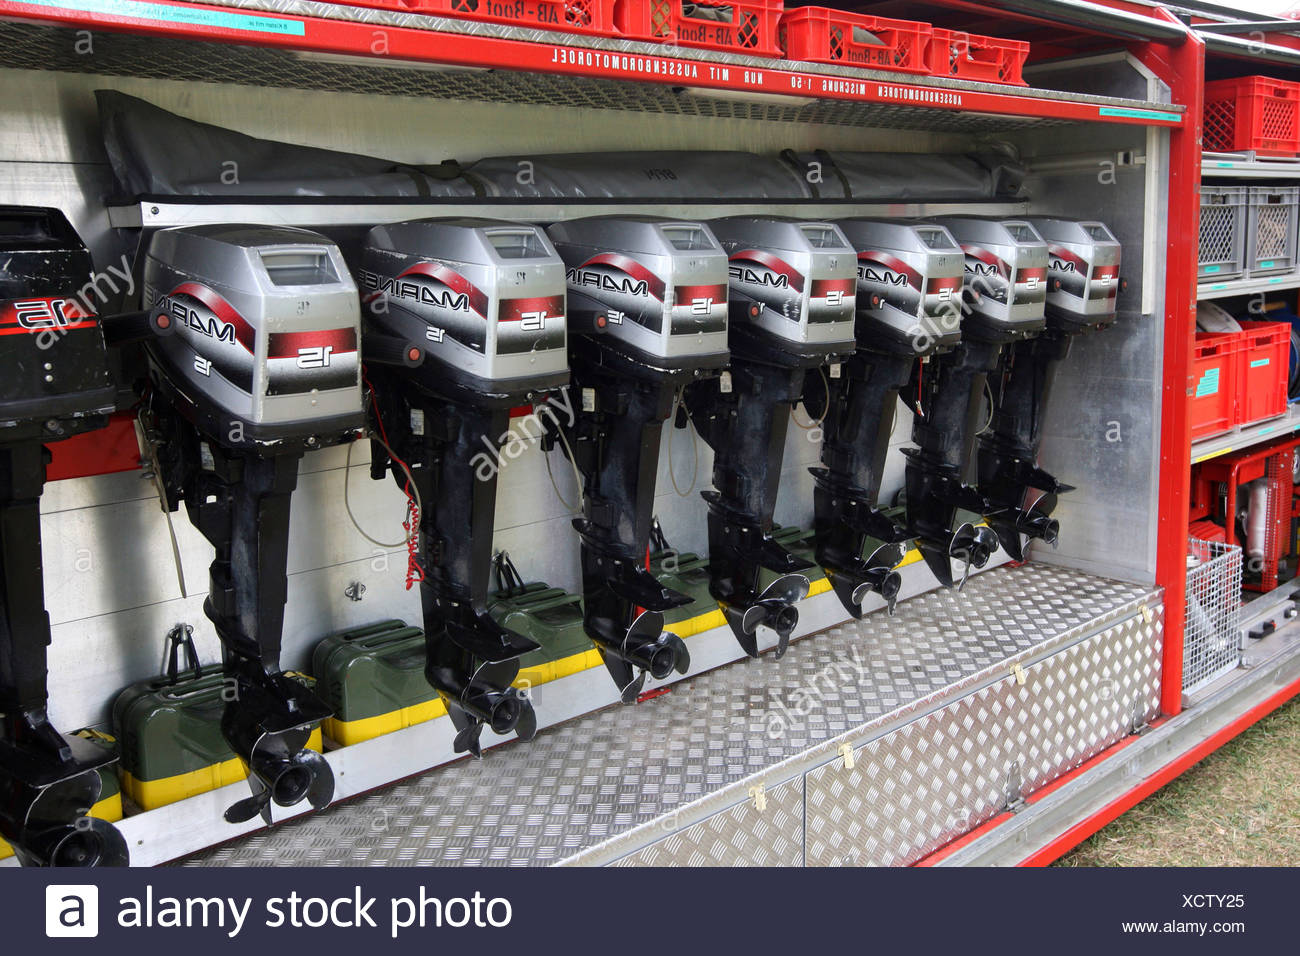 Outboard motors in the patrol car of the fire brigade in Mannheim, Hessen, Germany, Europe - Stock Image